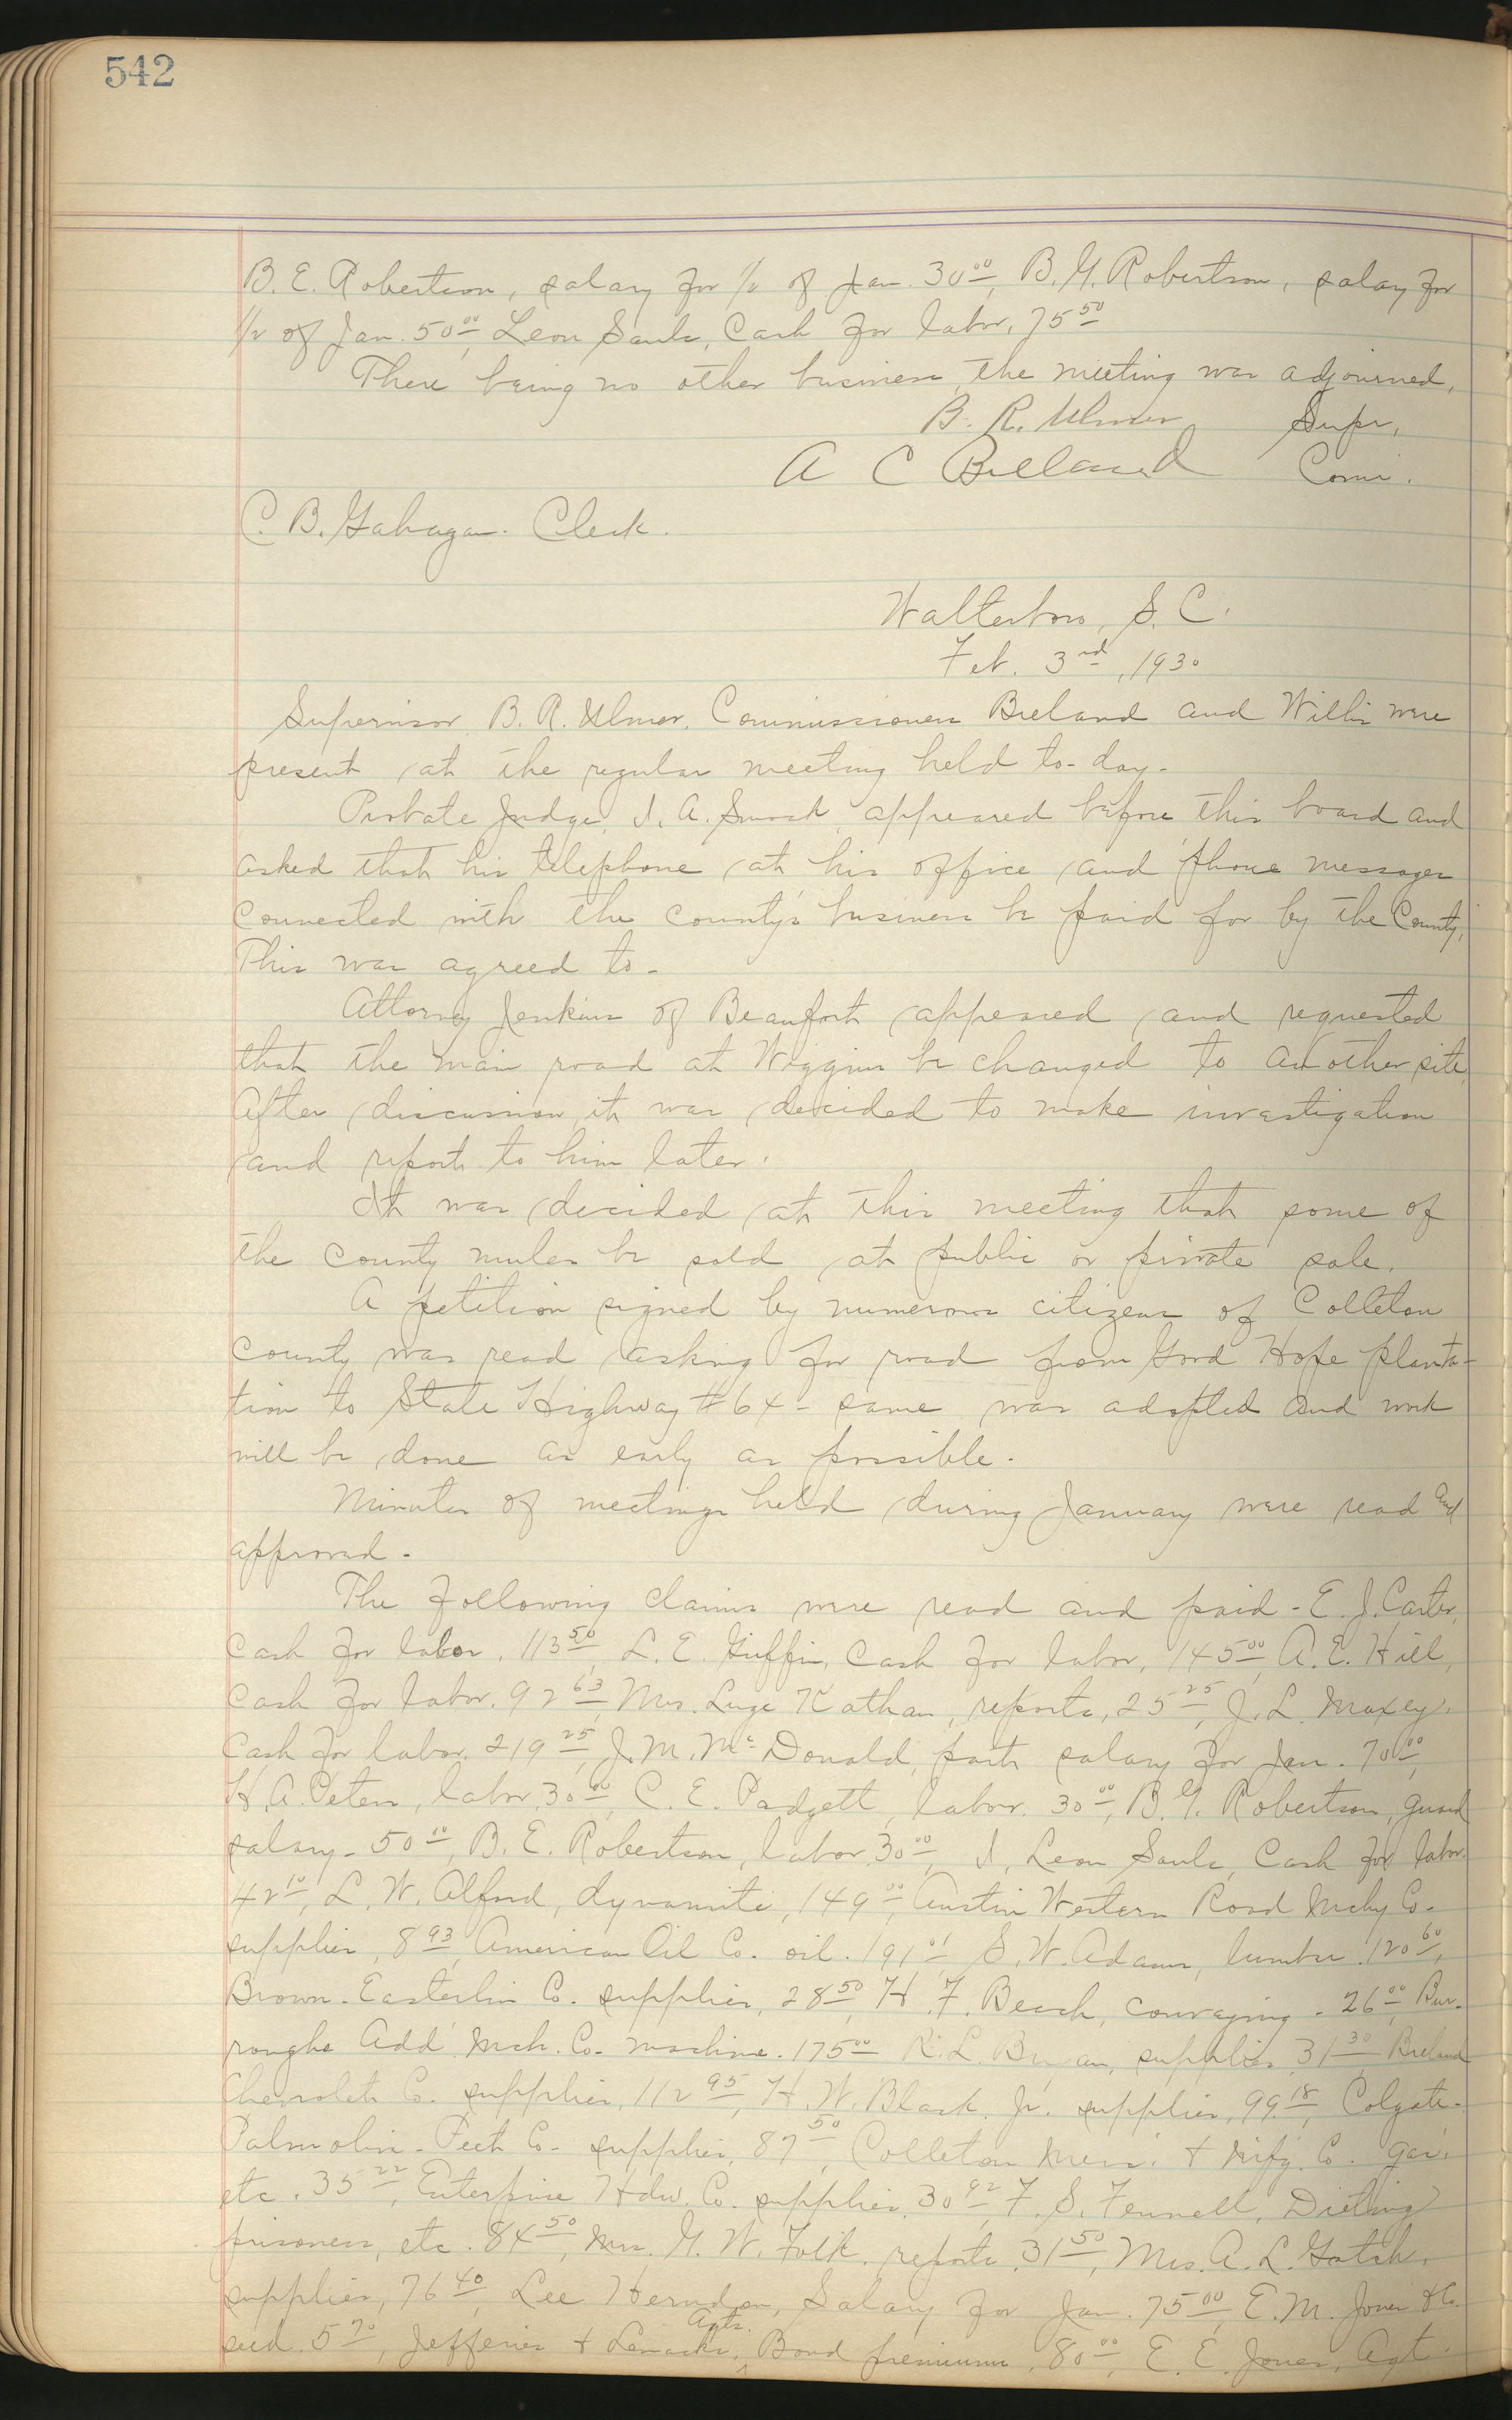 Colleton County Highway Commission Ledger, Page 542